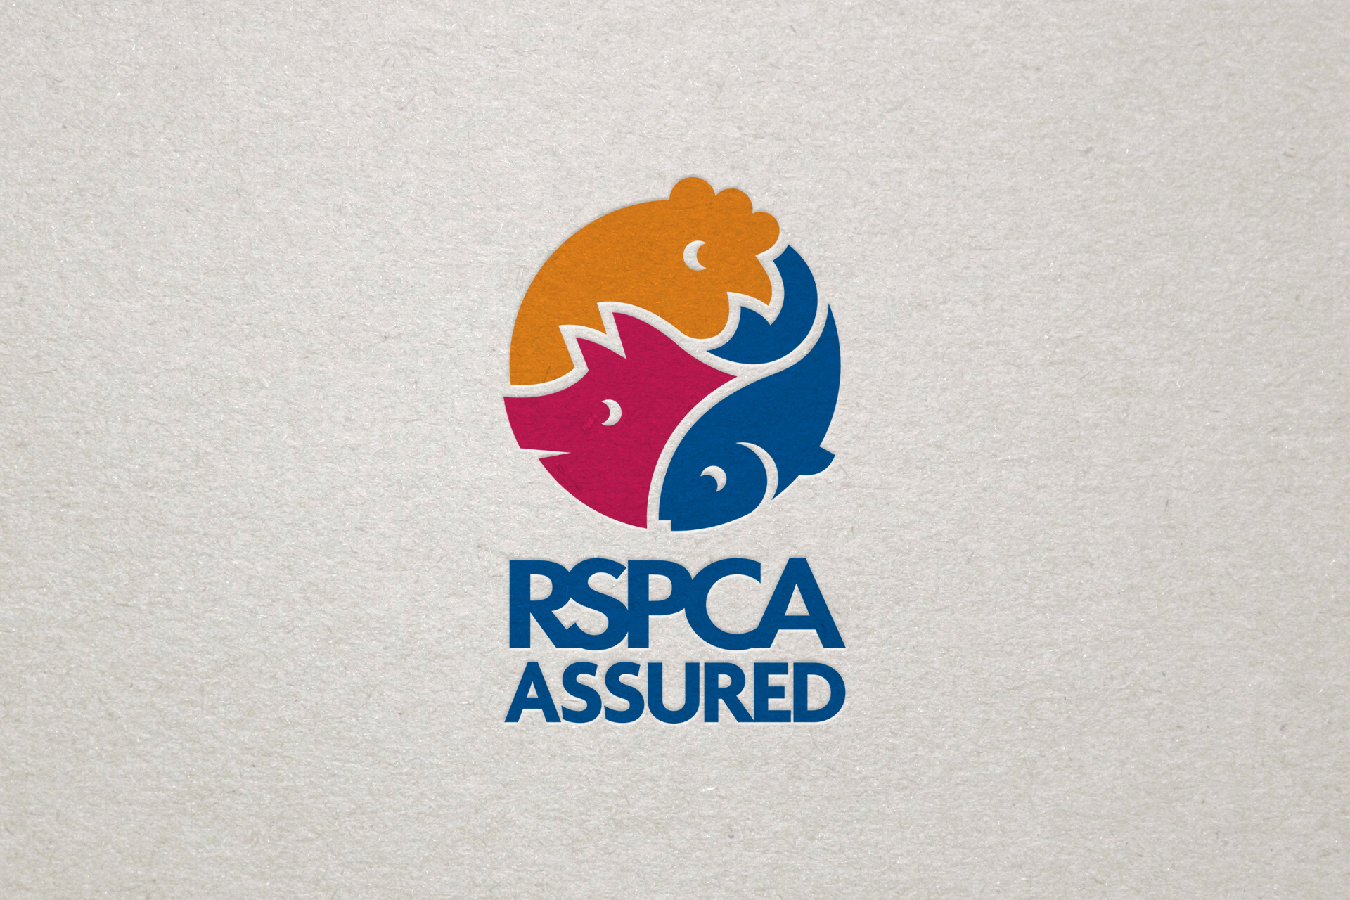 RSPCA Assured-01.jpg